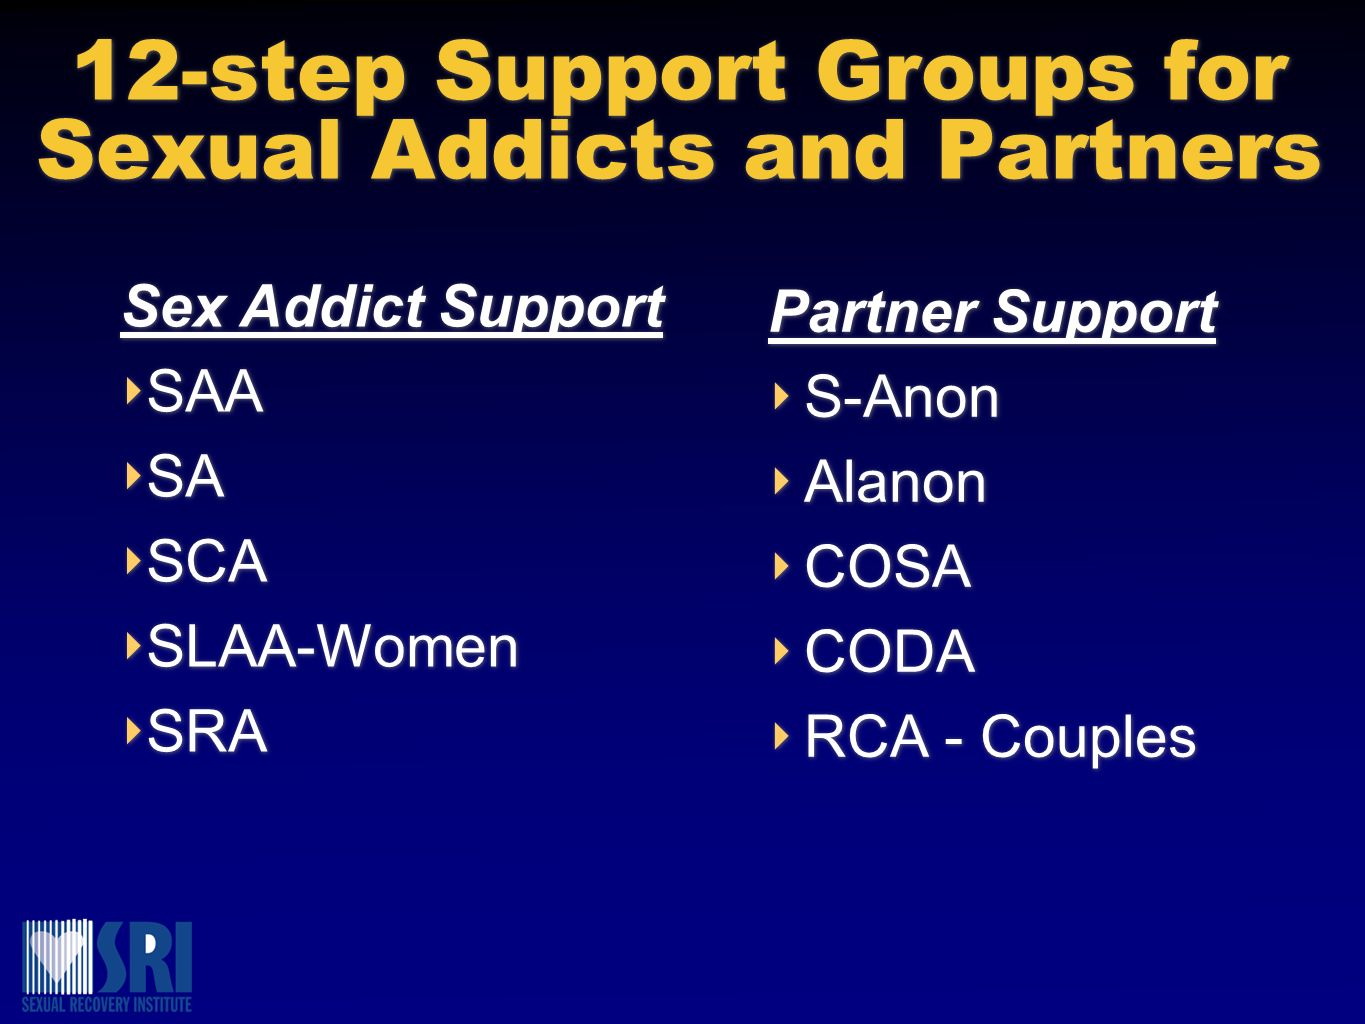 12-step Support Groups for Sexual Addicts and Partners